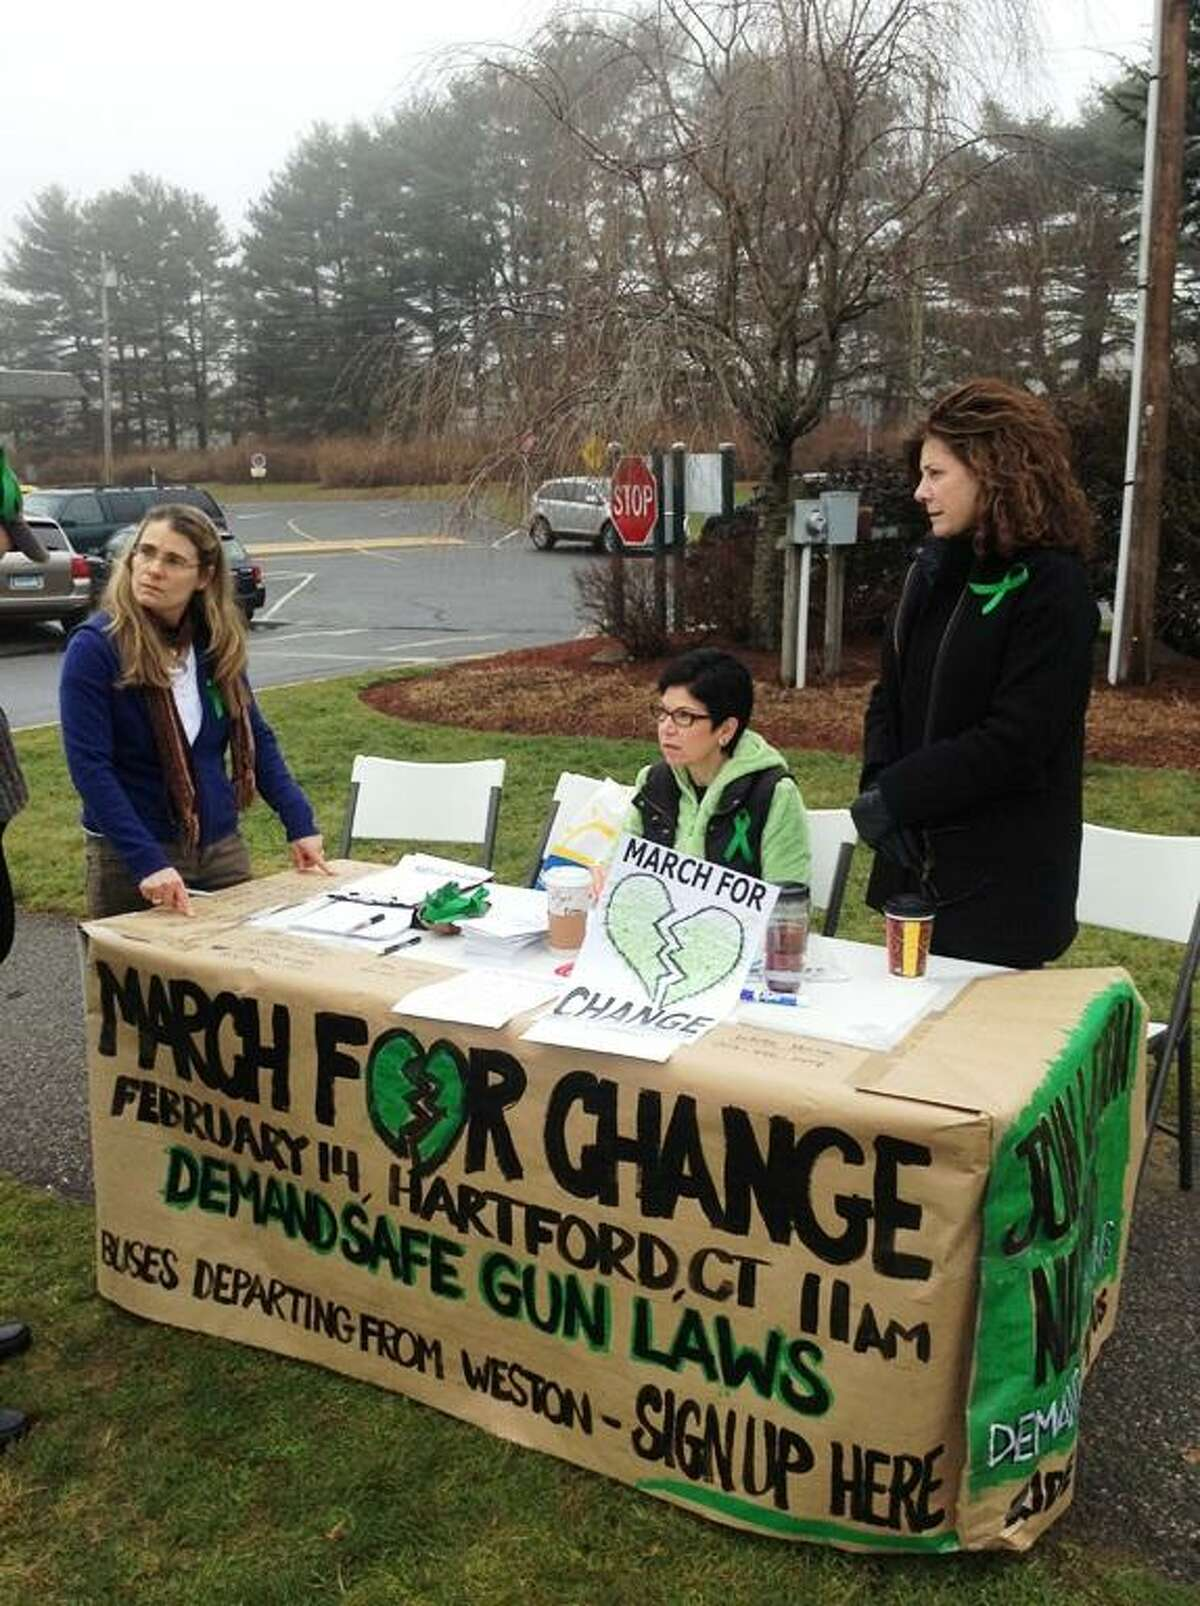 Three moms who have helped organize the March for Change are getting the word out about gun laws. From left, Kendall Webb, Jan Dinerstein, and Kerry Brock will be at the march on Thursday.